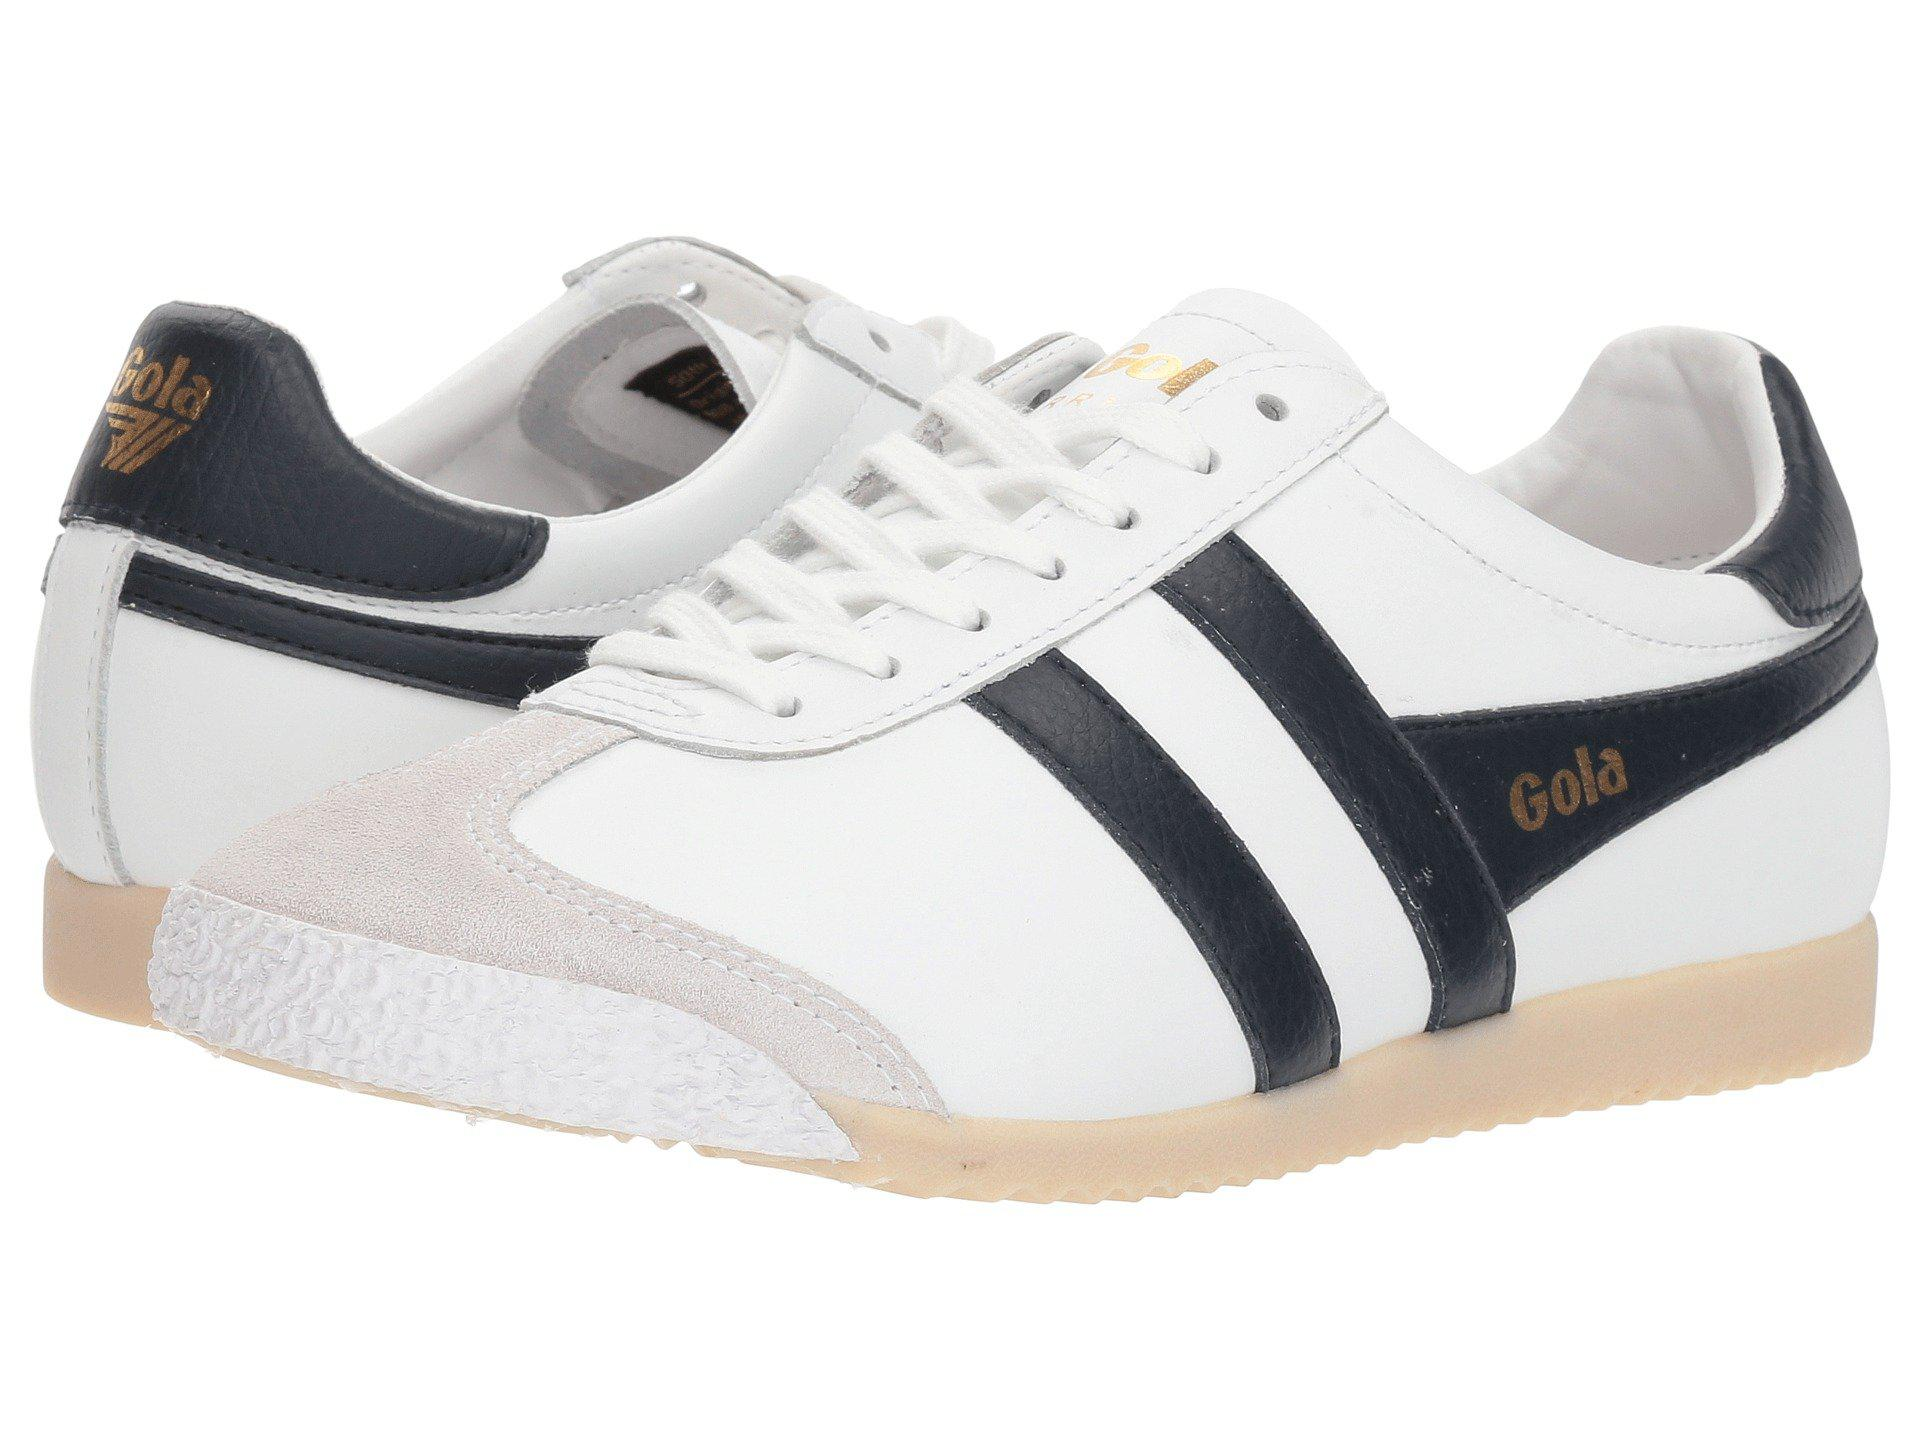 Gola Harrier 50 Leather Trainer(Men's) -White/Red Leather Free Shipping Best 0j9c0DZ